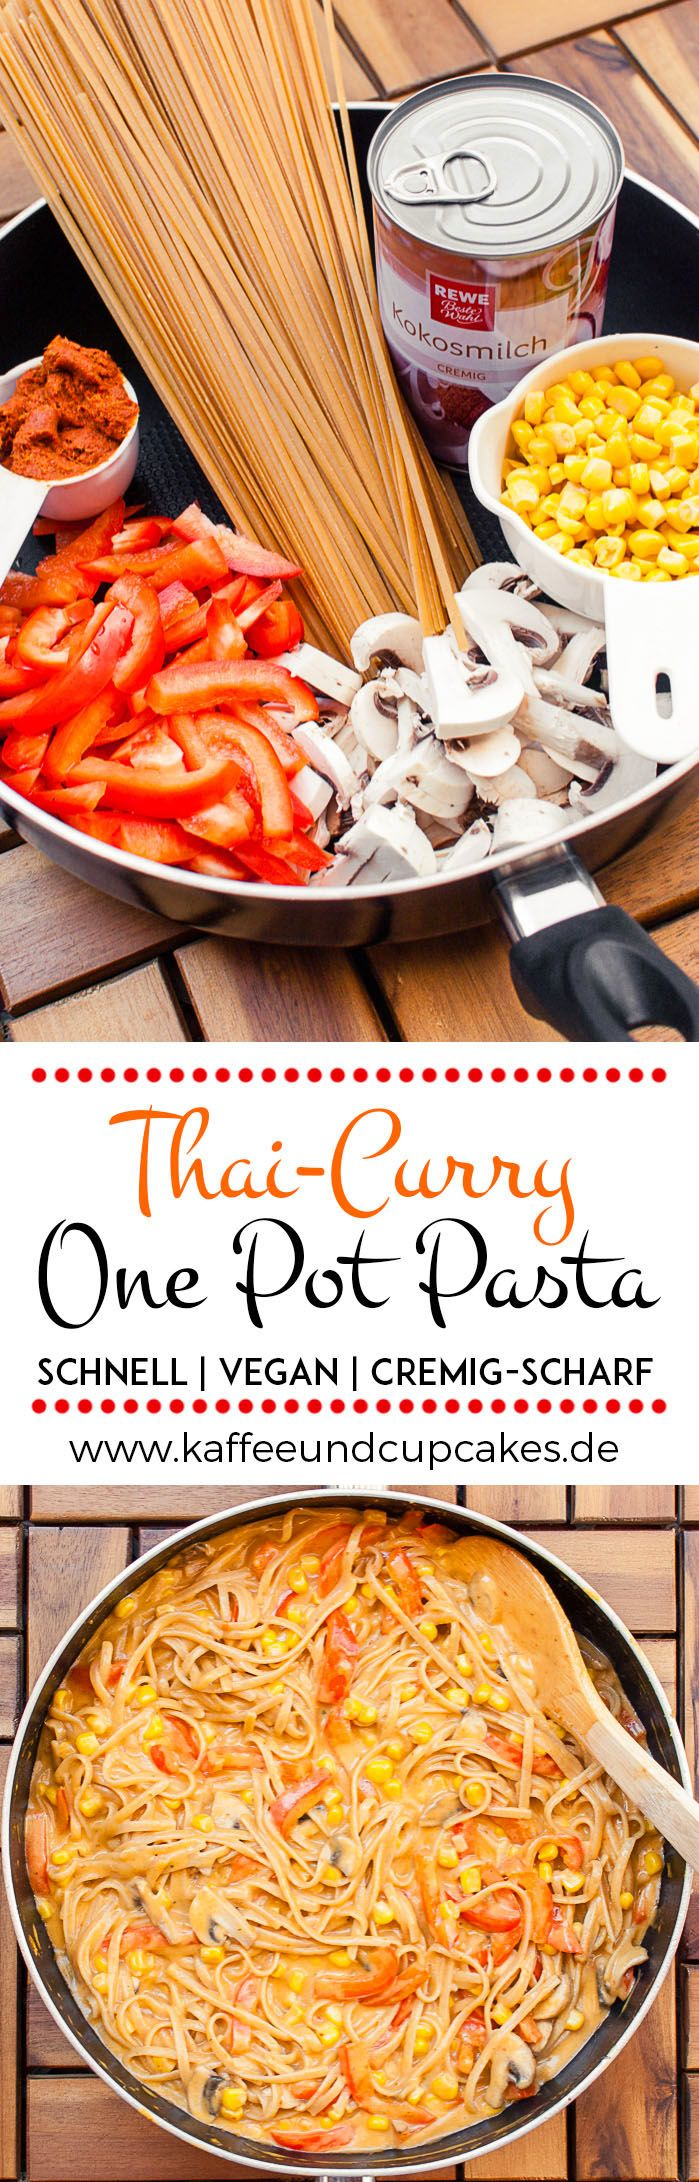 Vegane Thai-Curry One-Pot-Pasta